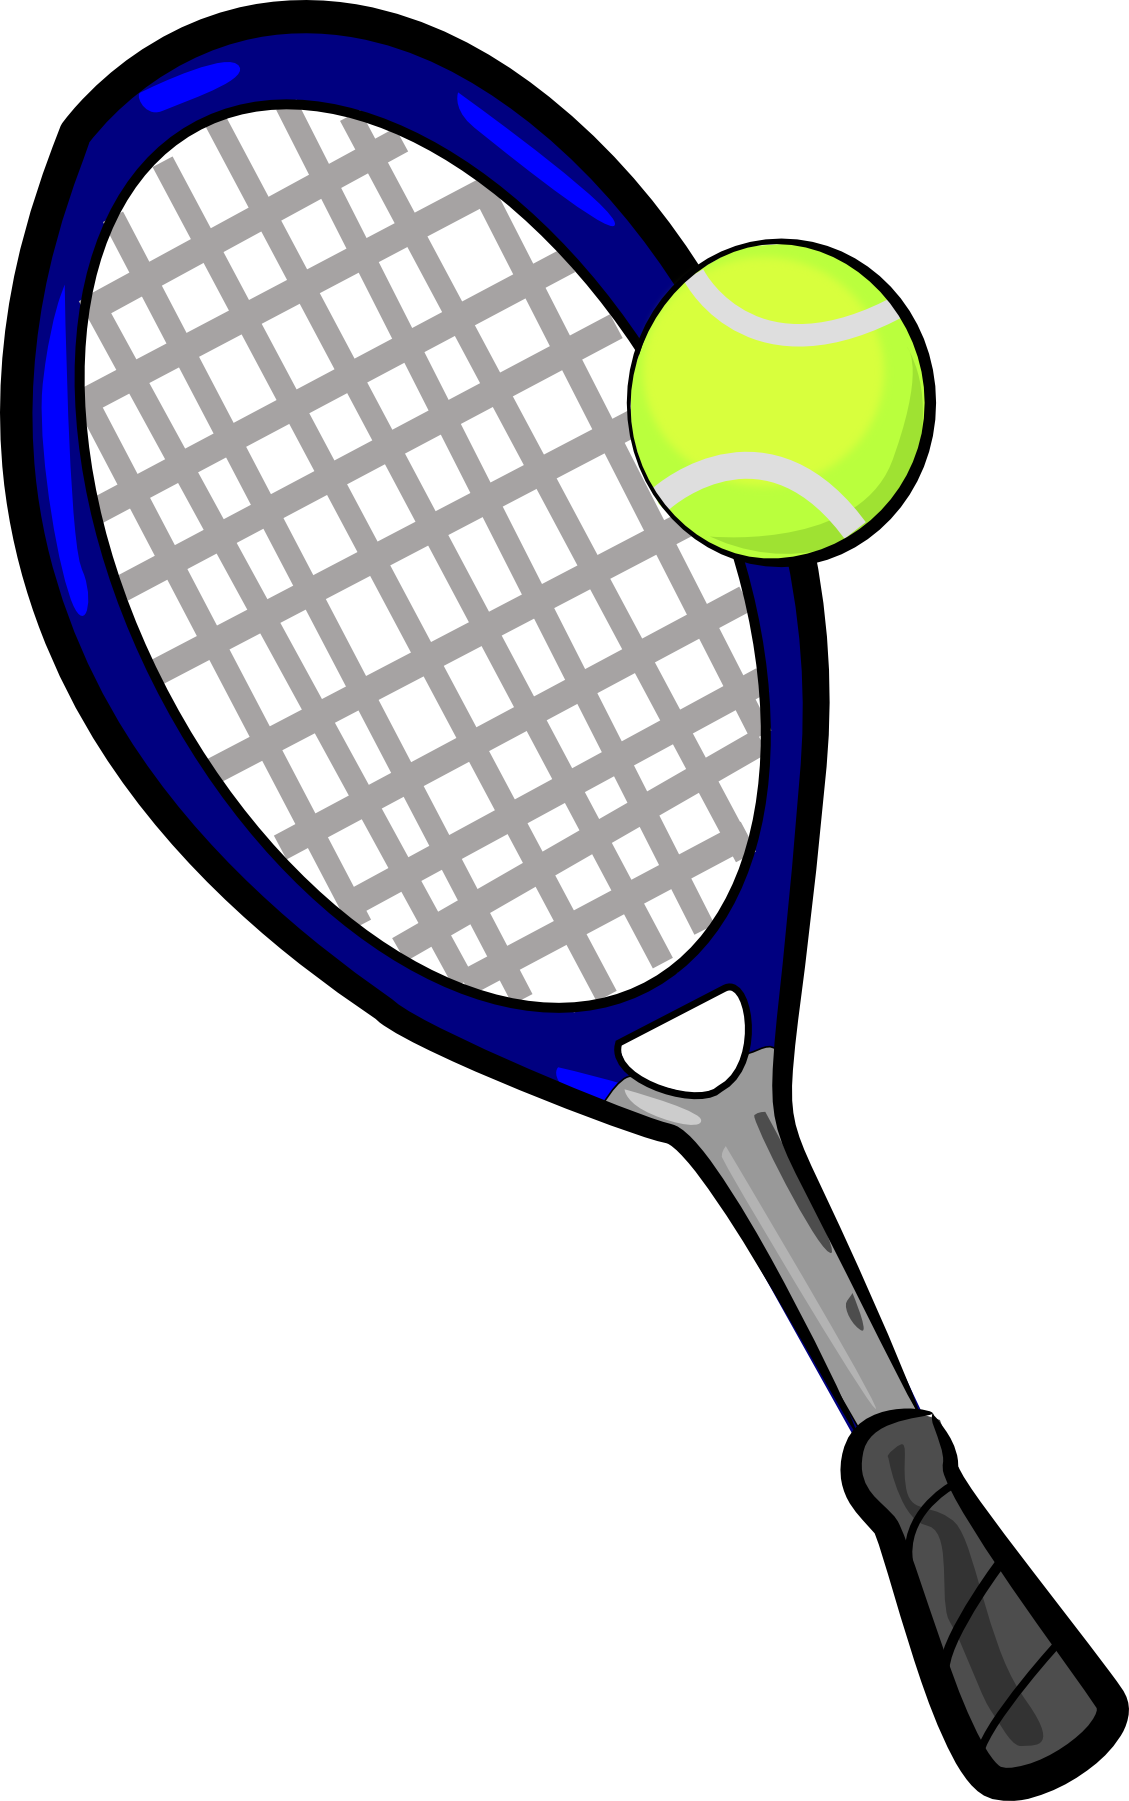 1129x1801 Tennis ball and racket clip art clipart